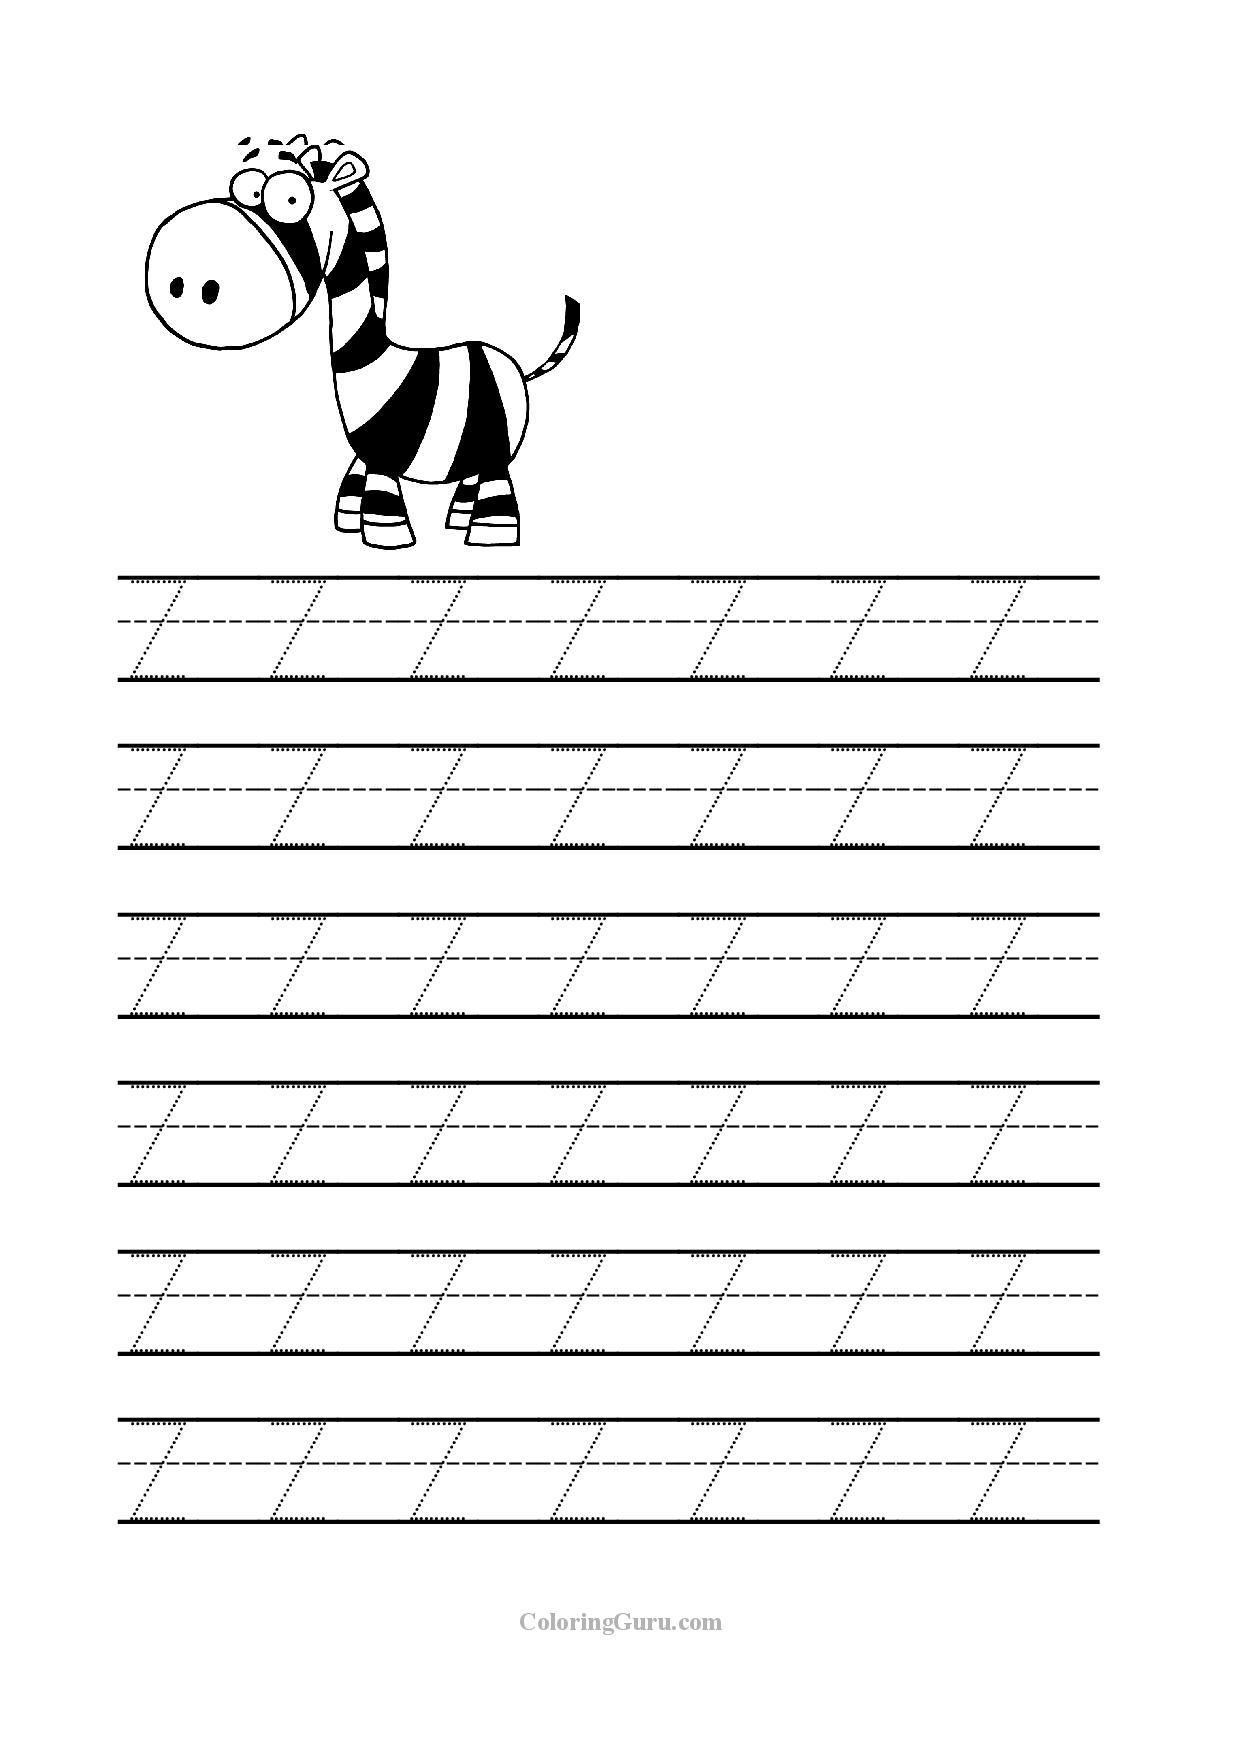 Free Printable Tracing Letter Z Worksheets For Preschool for Letter Z Worksheets For Prek